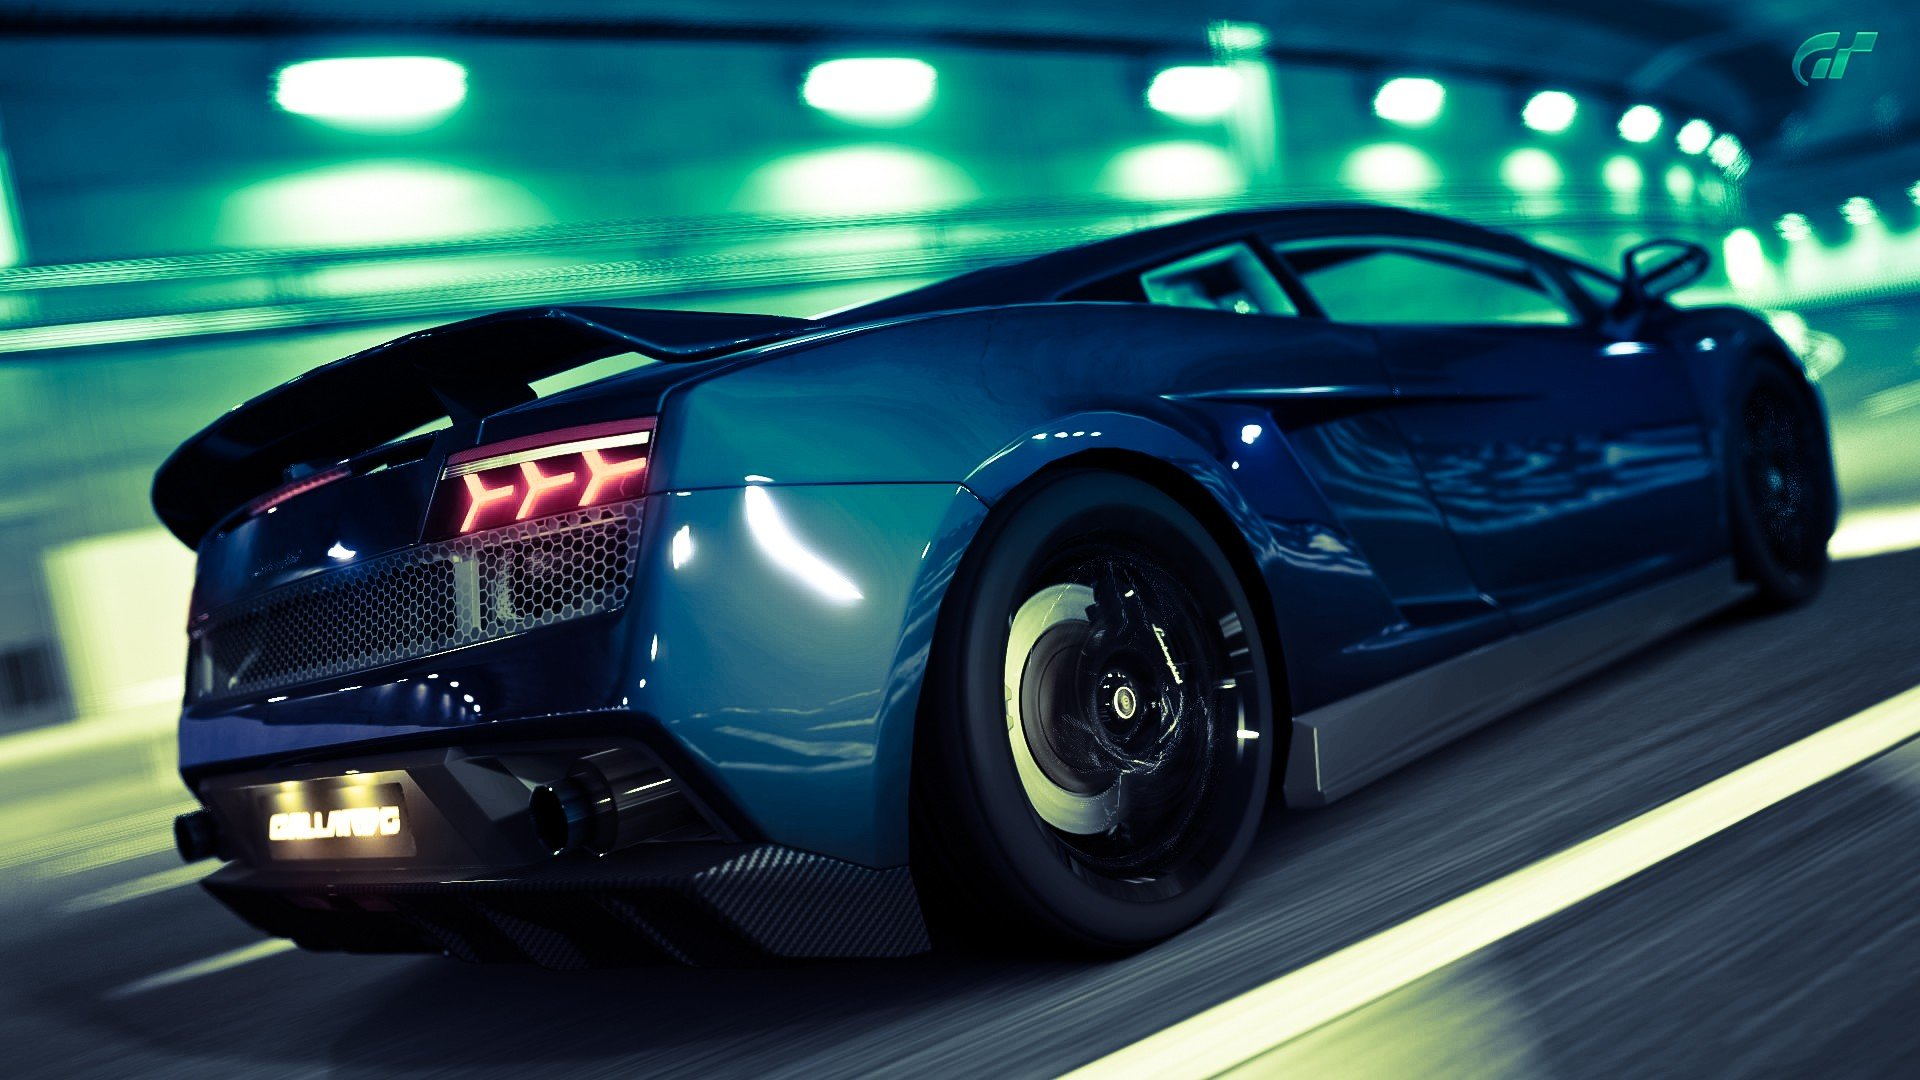 Lamborghini moving at full speed   Car Wallpapers   Hi Wallpaperscom 1920x1080